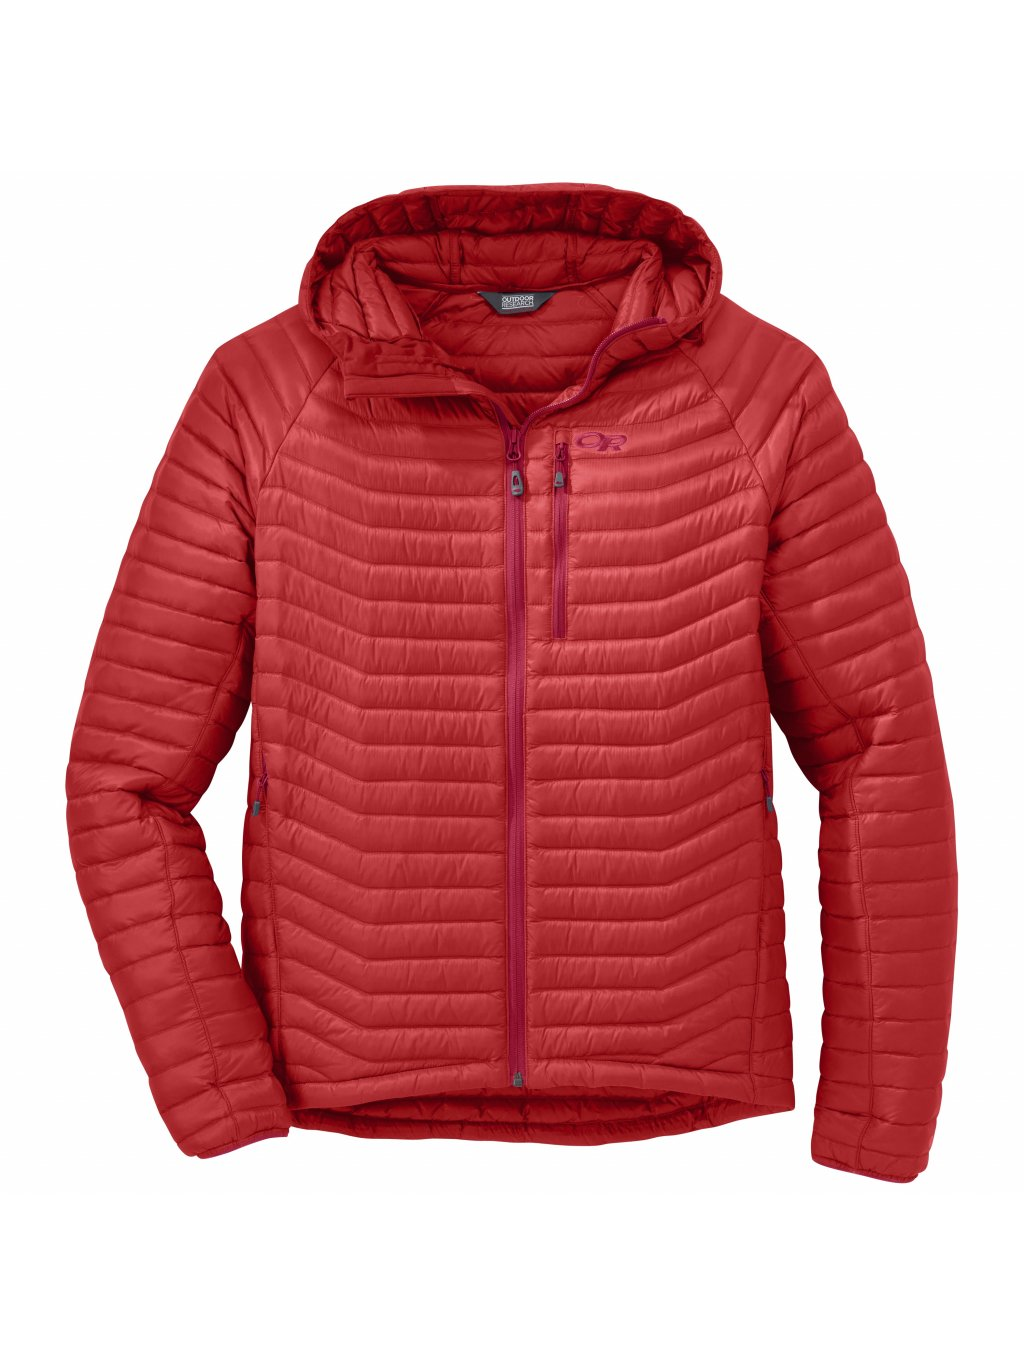 OUTDOOR RESEARCH Men's Verismo Hooded Down Jacket, Hotsauce (velikost XXL)